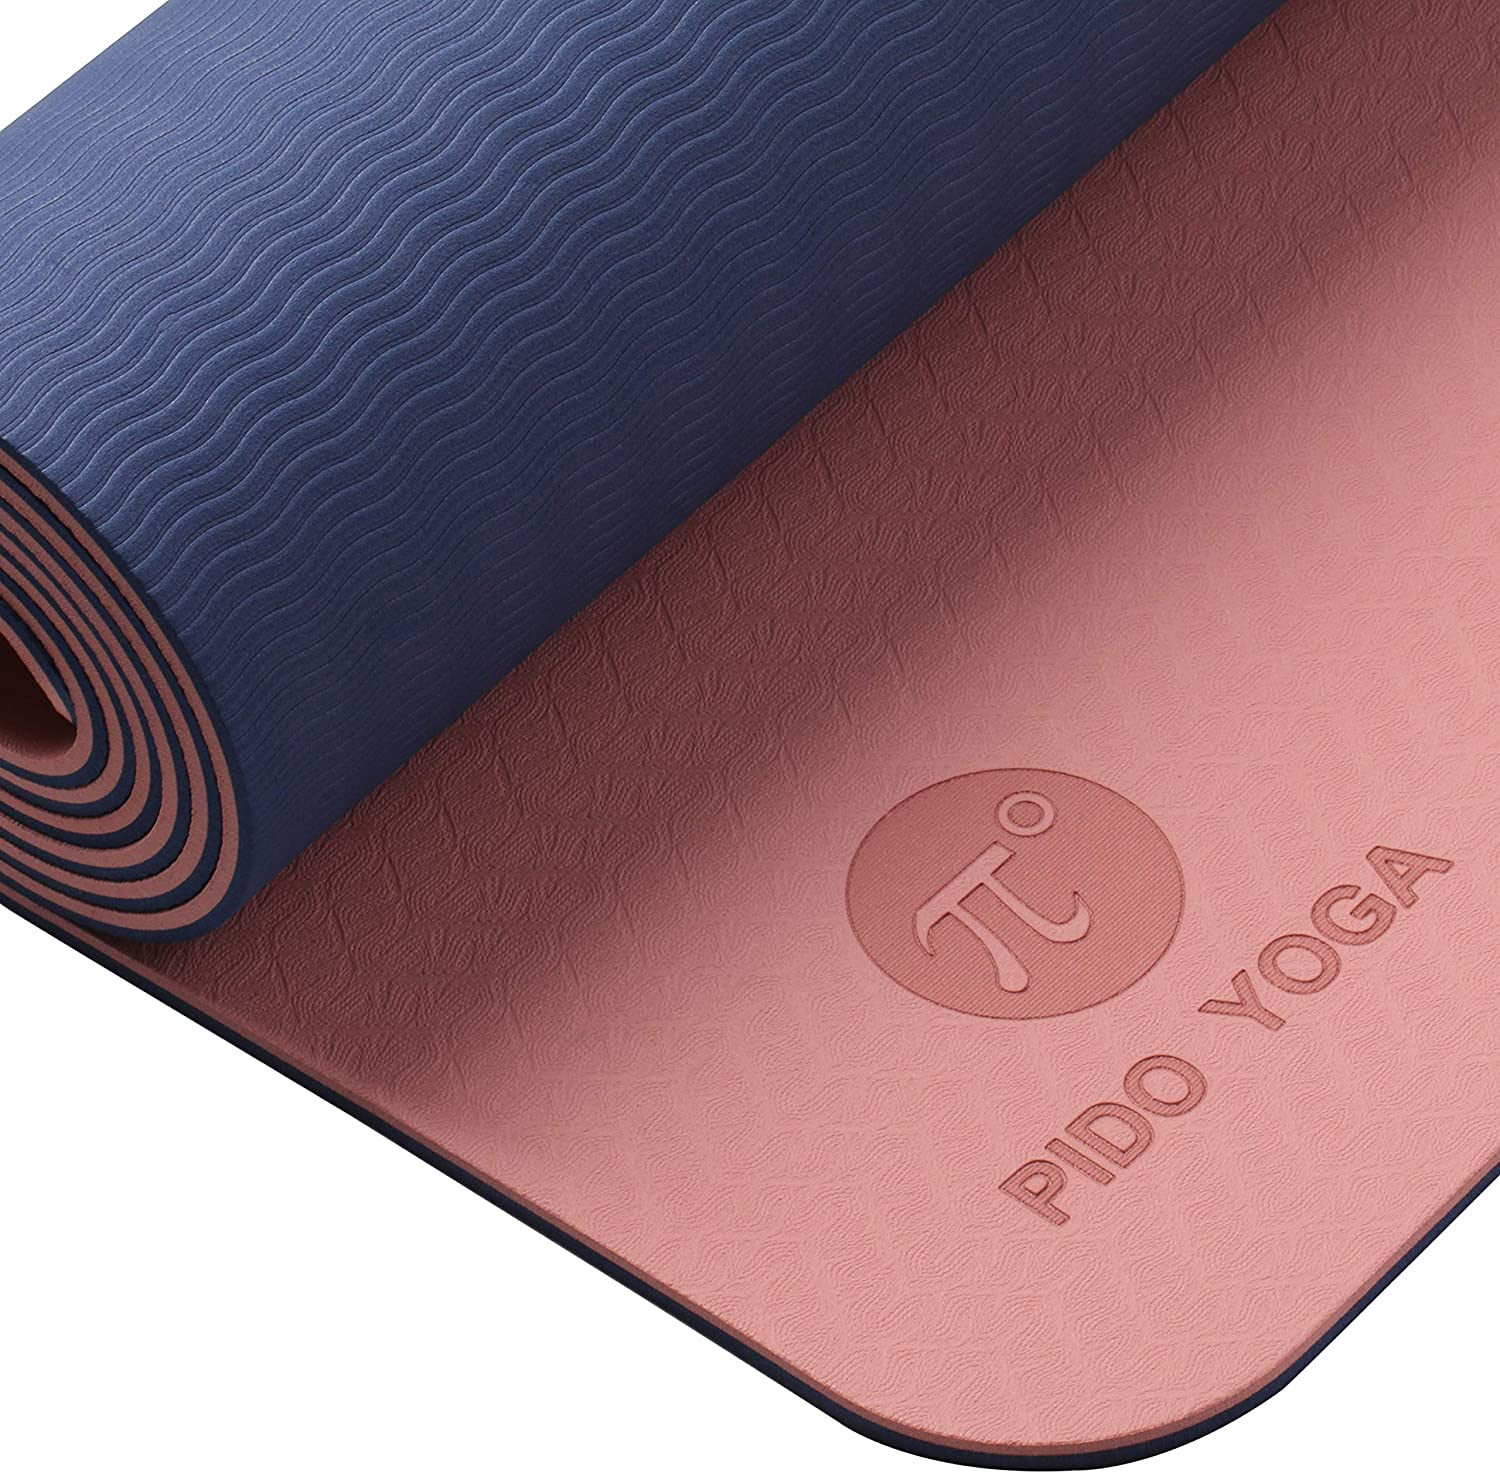 Light Weight Travel Yoga mat,Eco-Friendly Fitness Mat Non Slip with Yoga Carrier Strap /& bag,Pilates and Gymnastics Stretching Mat Perfect For Men and Women,183 x 61 x 0.6CM PIDO Yoga Mat